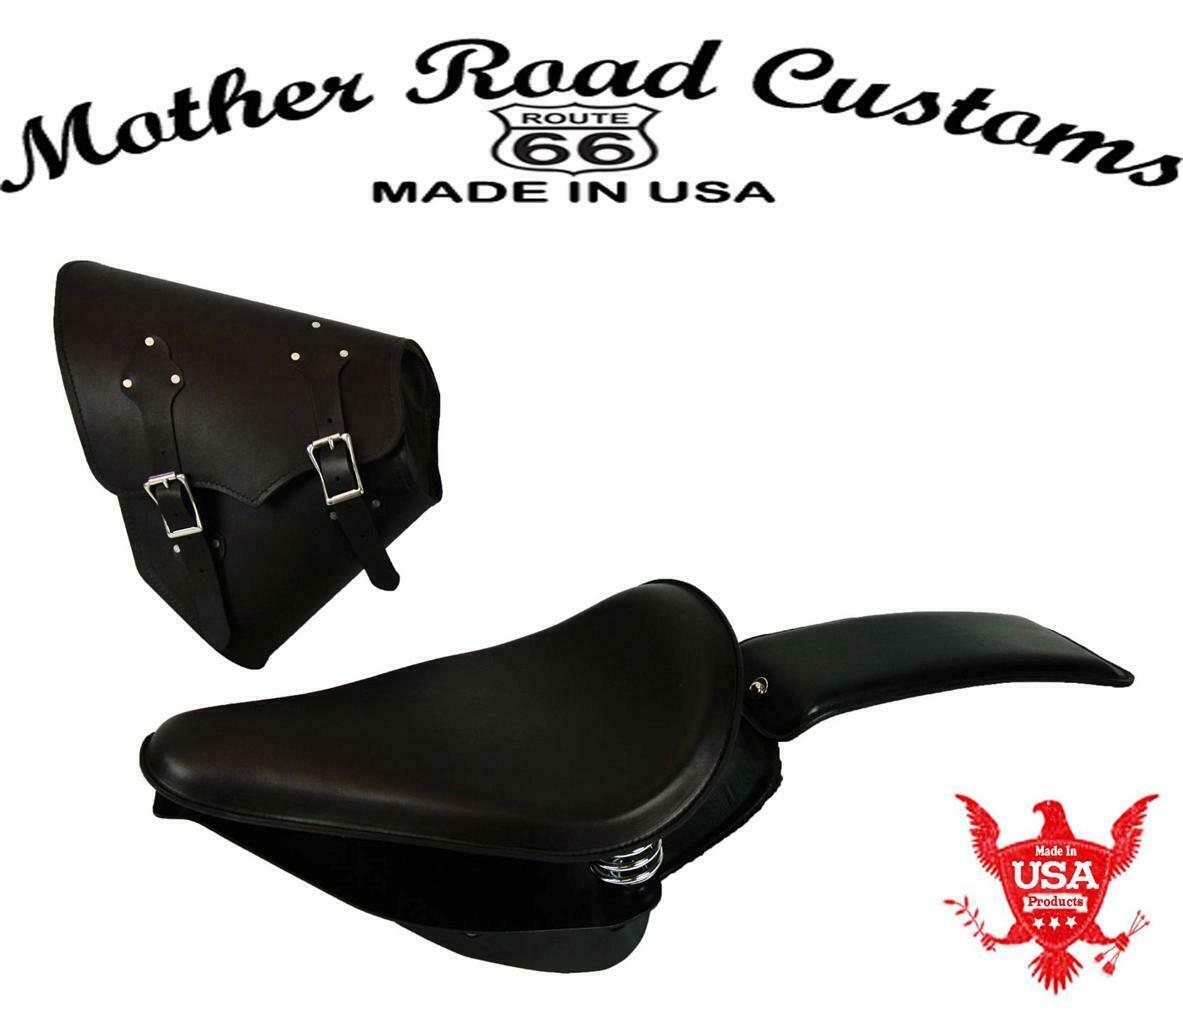 2000-2017 Harley Softail Spring Seat Pad Mounting Kit Saddle Bag Blk Leather cs - Mother Road Customs